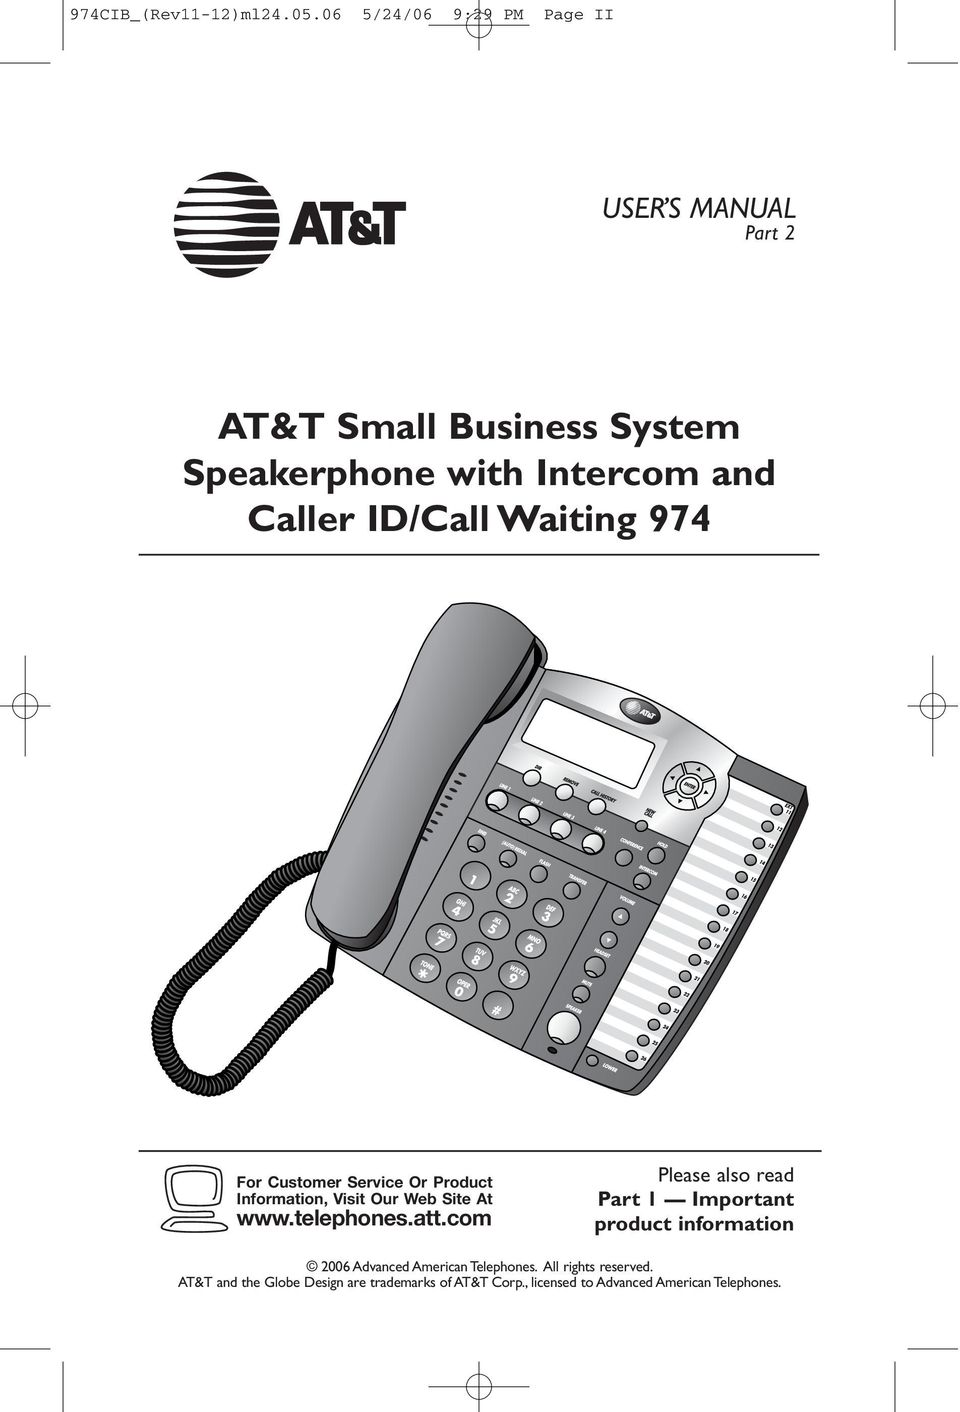 ID/Call Waiting 974 For Customer Service Or Product Information, Visit Our Web Site At www.telephones.att.